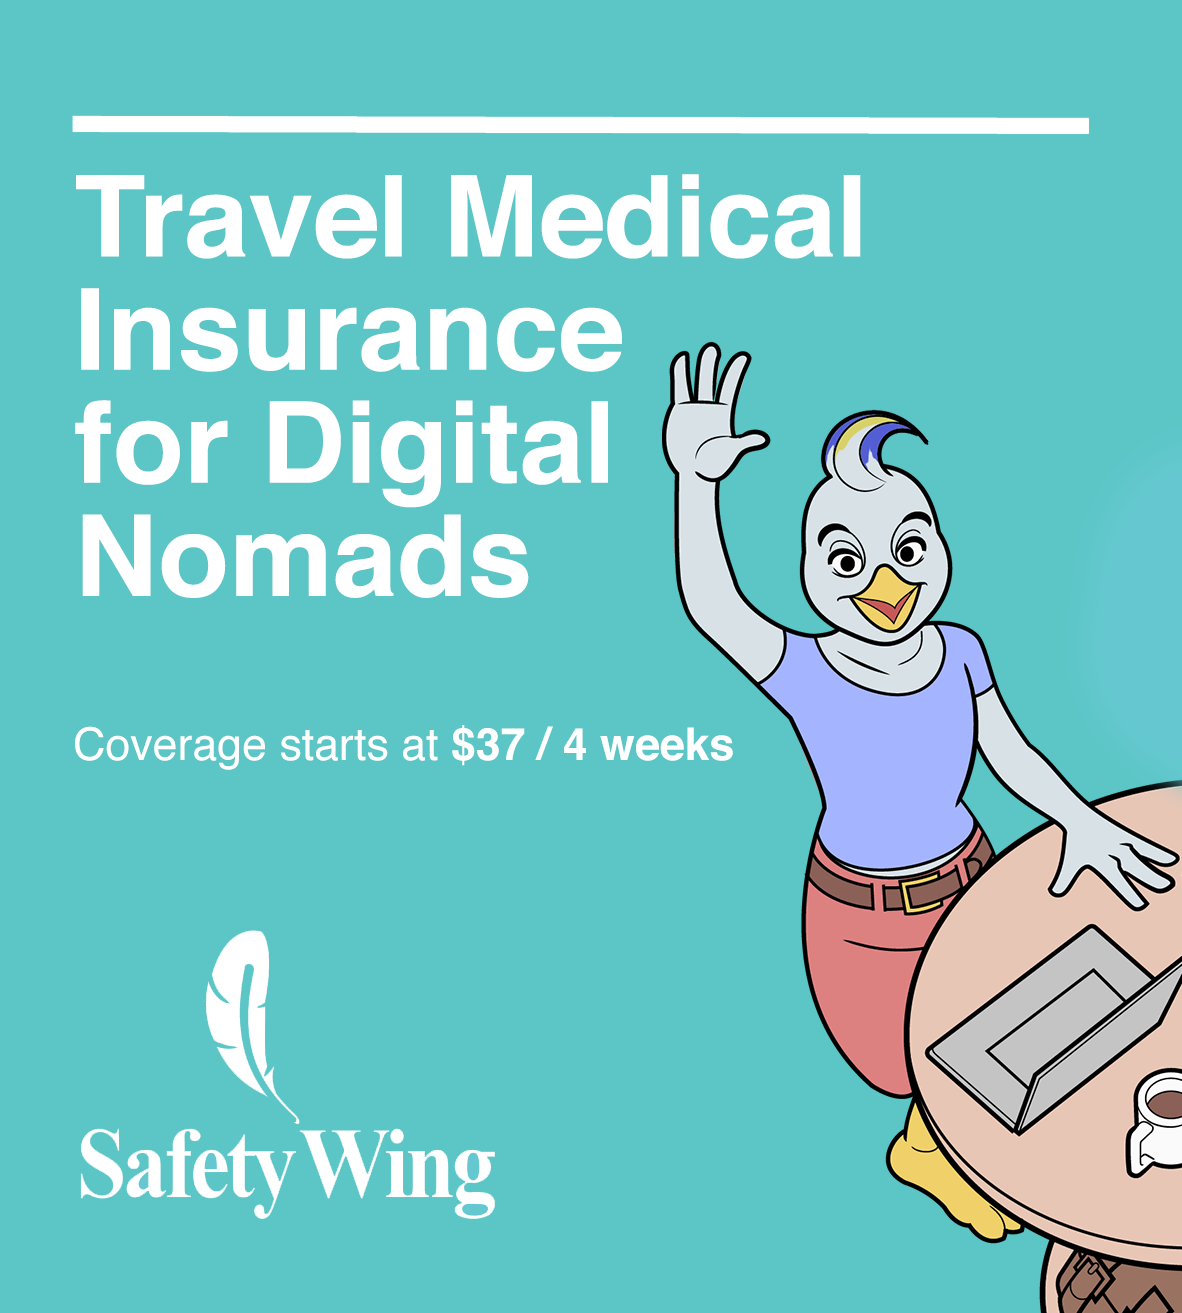 SafetyWing Travel Medical Insurance for Digital Nomads